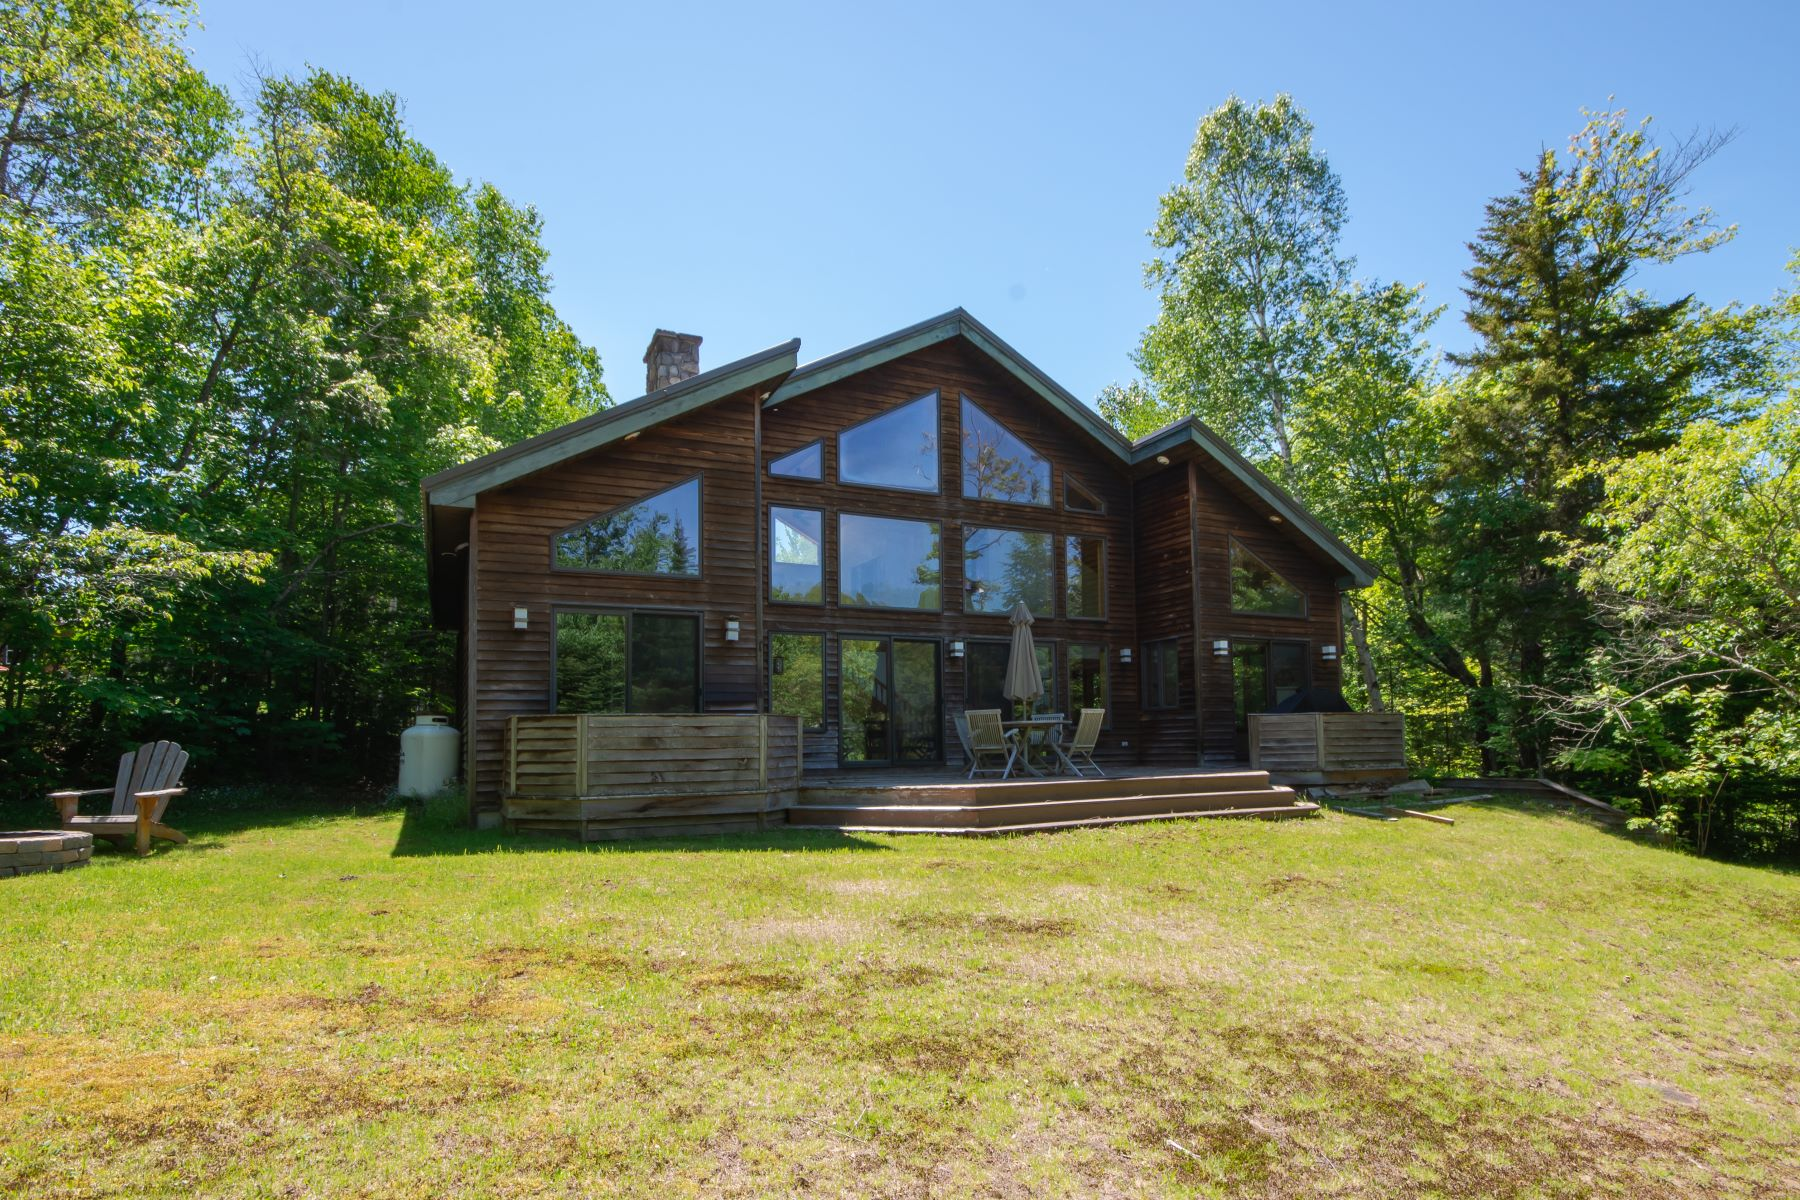 Single Family Homes for Sale at Chateaugay Lake Vacation Home 14 Balsam Way Chateaugay, New York 12920 United States